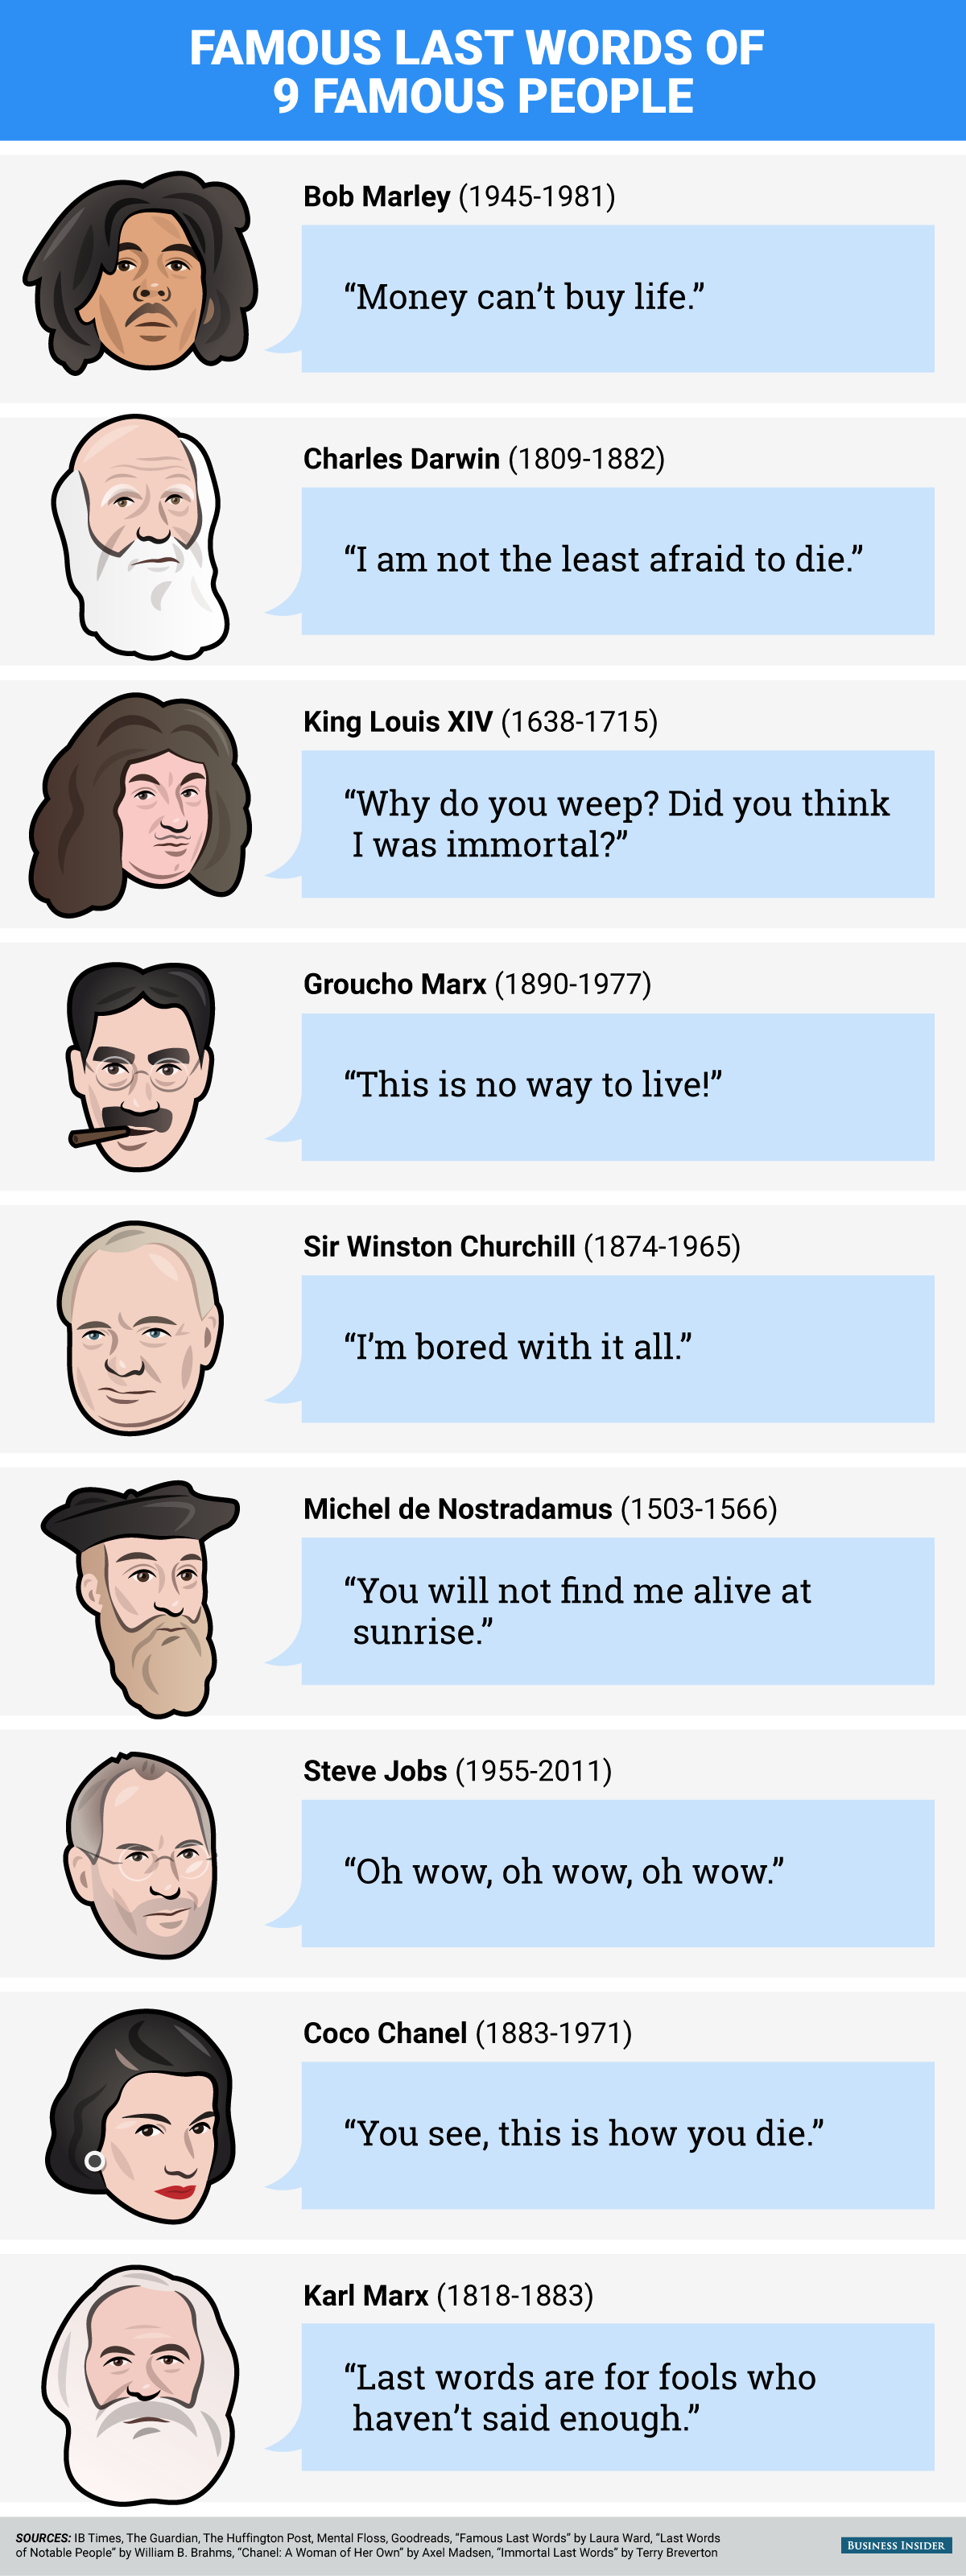 Strange things 9 famous people said right before they died